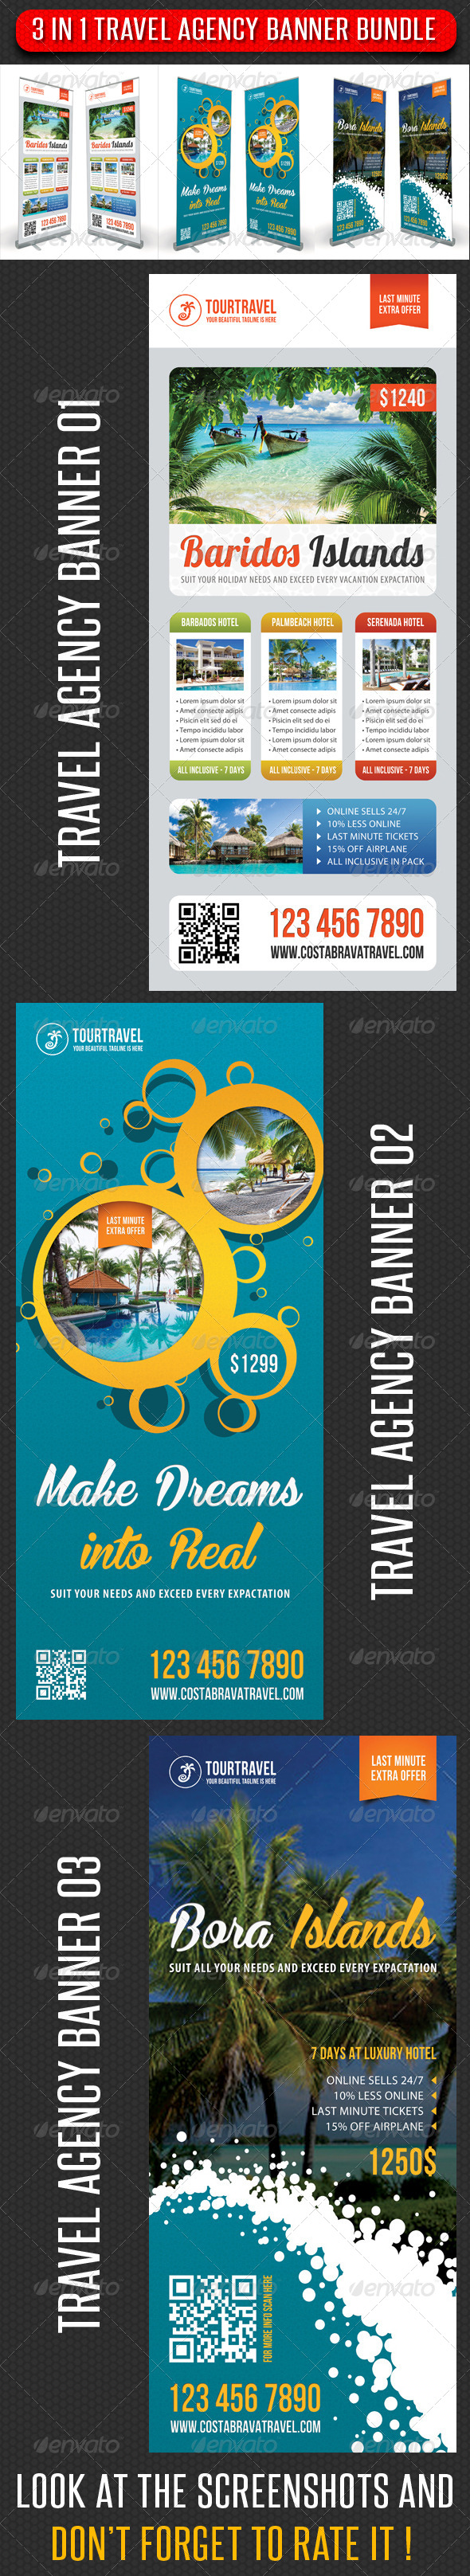 GraphicRiver 3 in 1 Travel Agency Banner Bundle 03 7411410